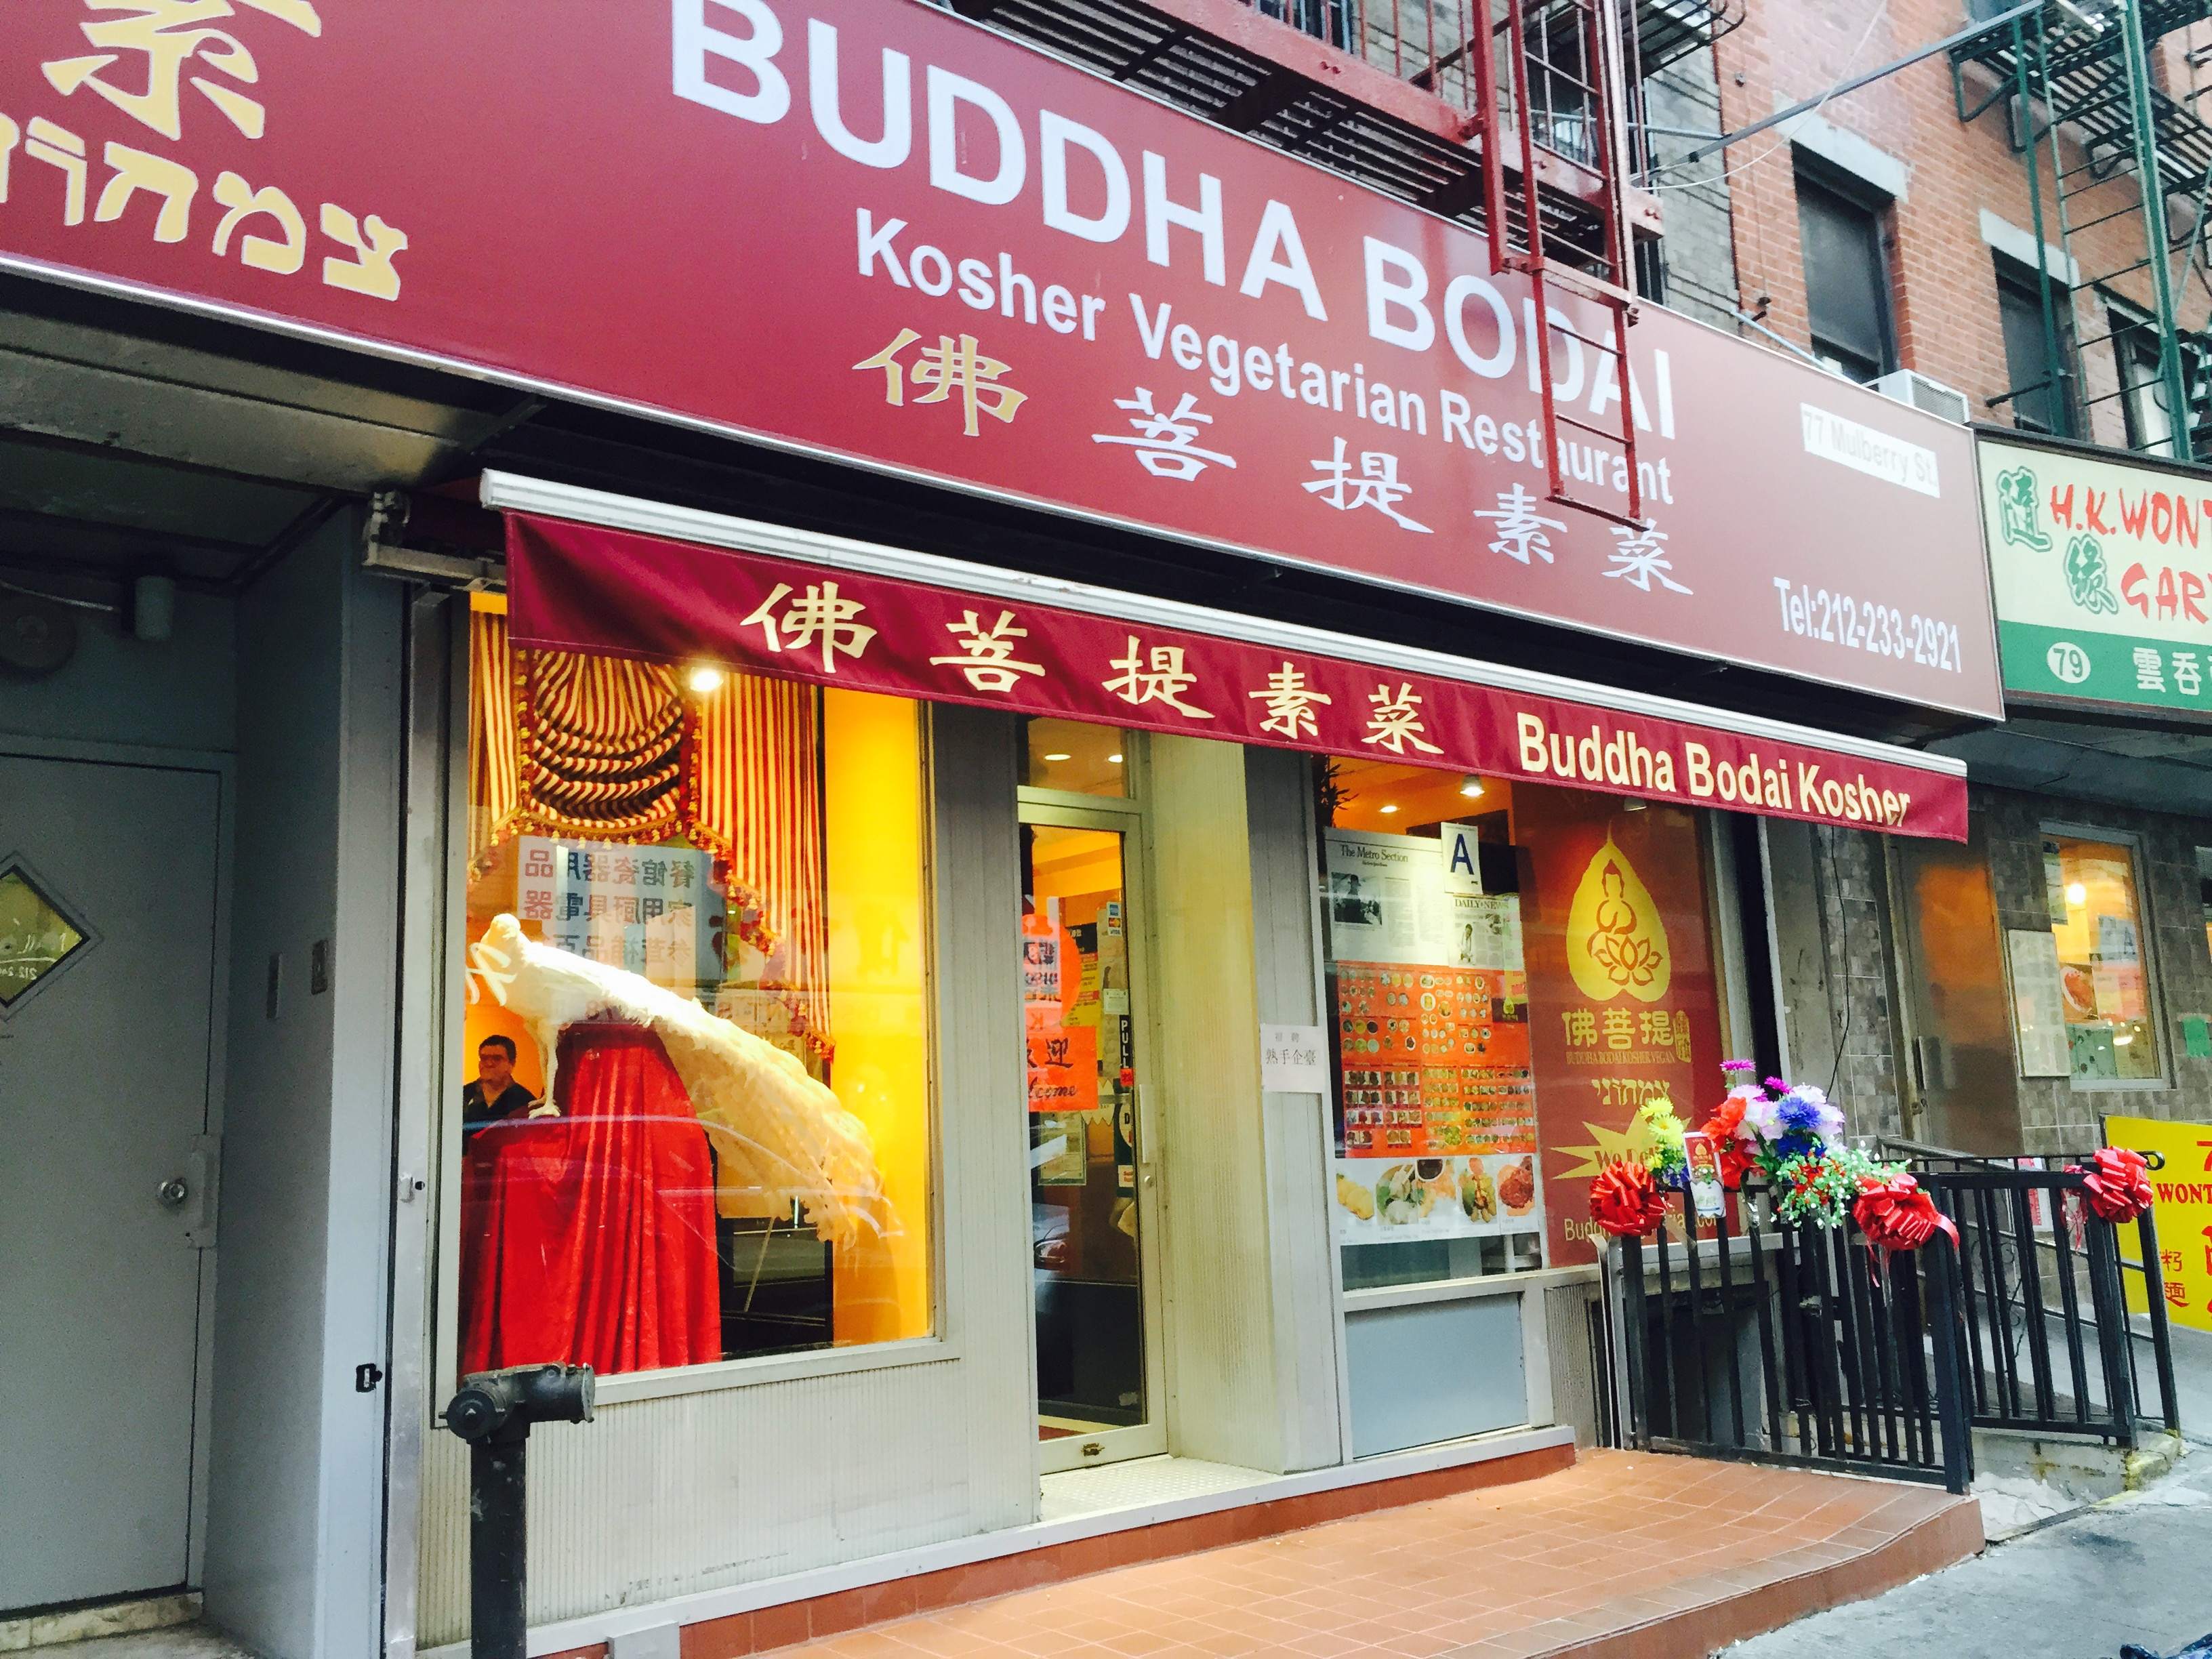 New Buddha Bodai Kosher Vegetarian Restaurant Chinatown Nyc